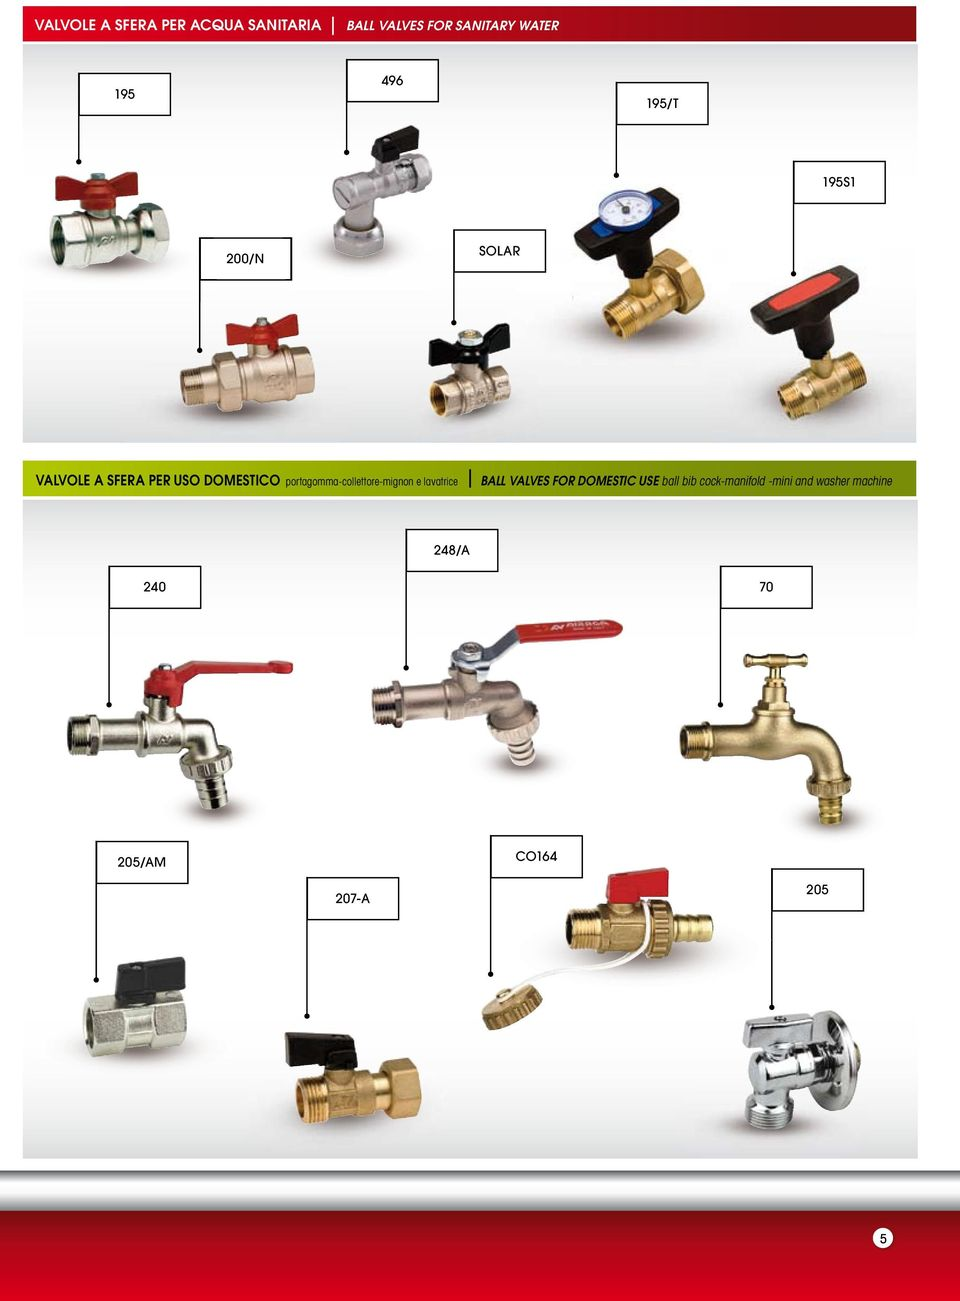 portagomma-collettore-mignon e lavatrice BALL VALVES FOR DOMESTIC USE